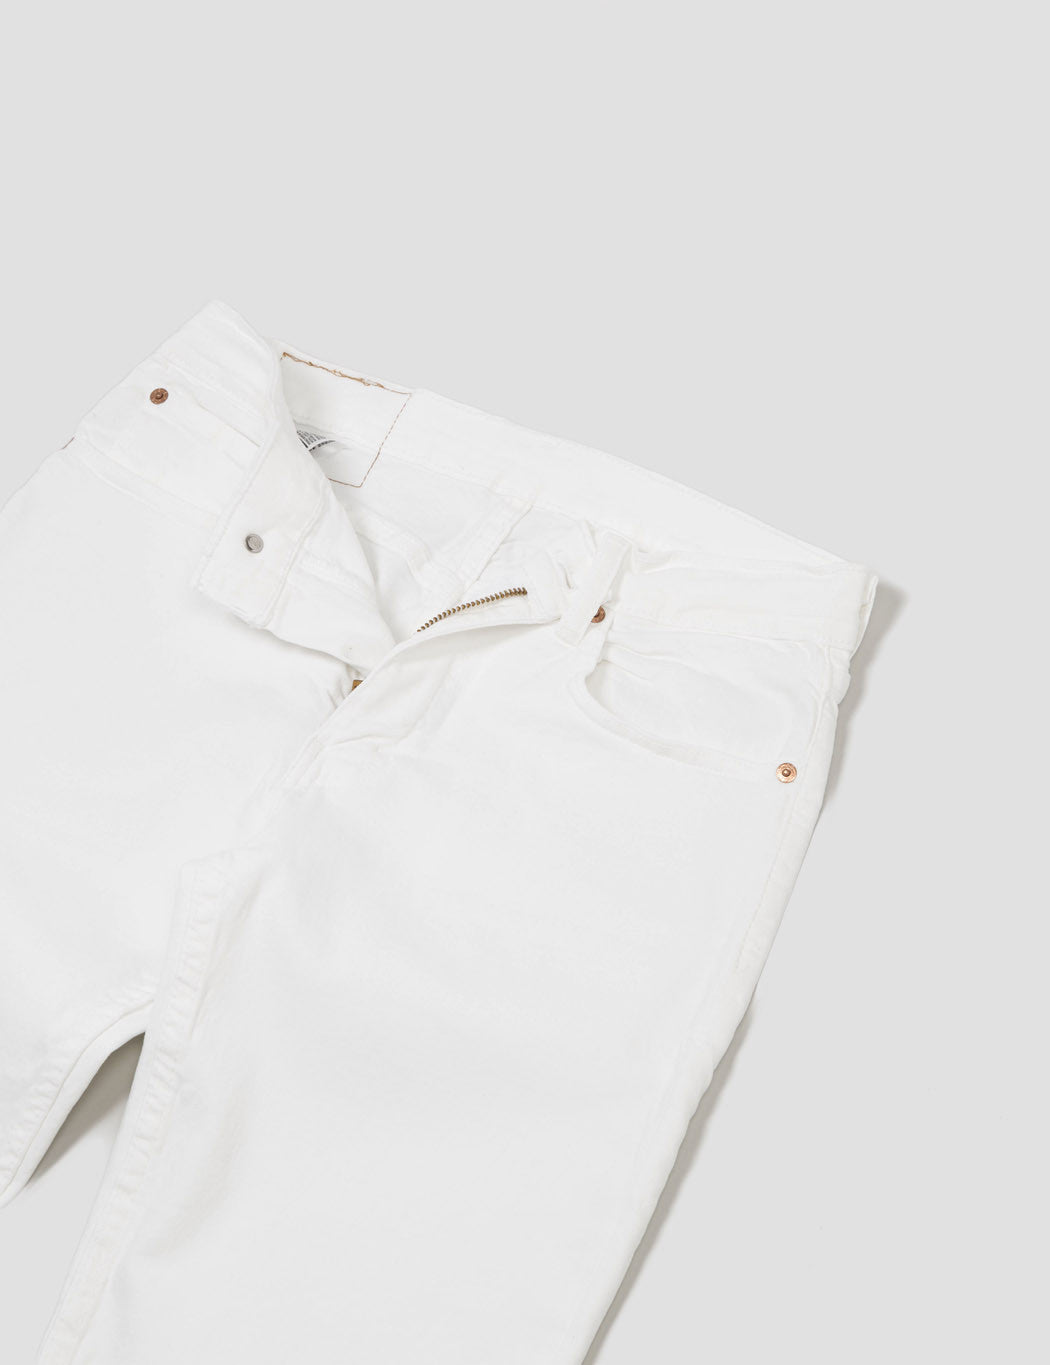 Levis 511 Jeans 14oz (Slim) - White